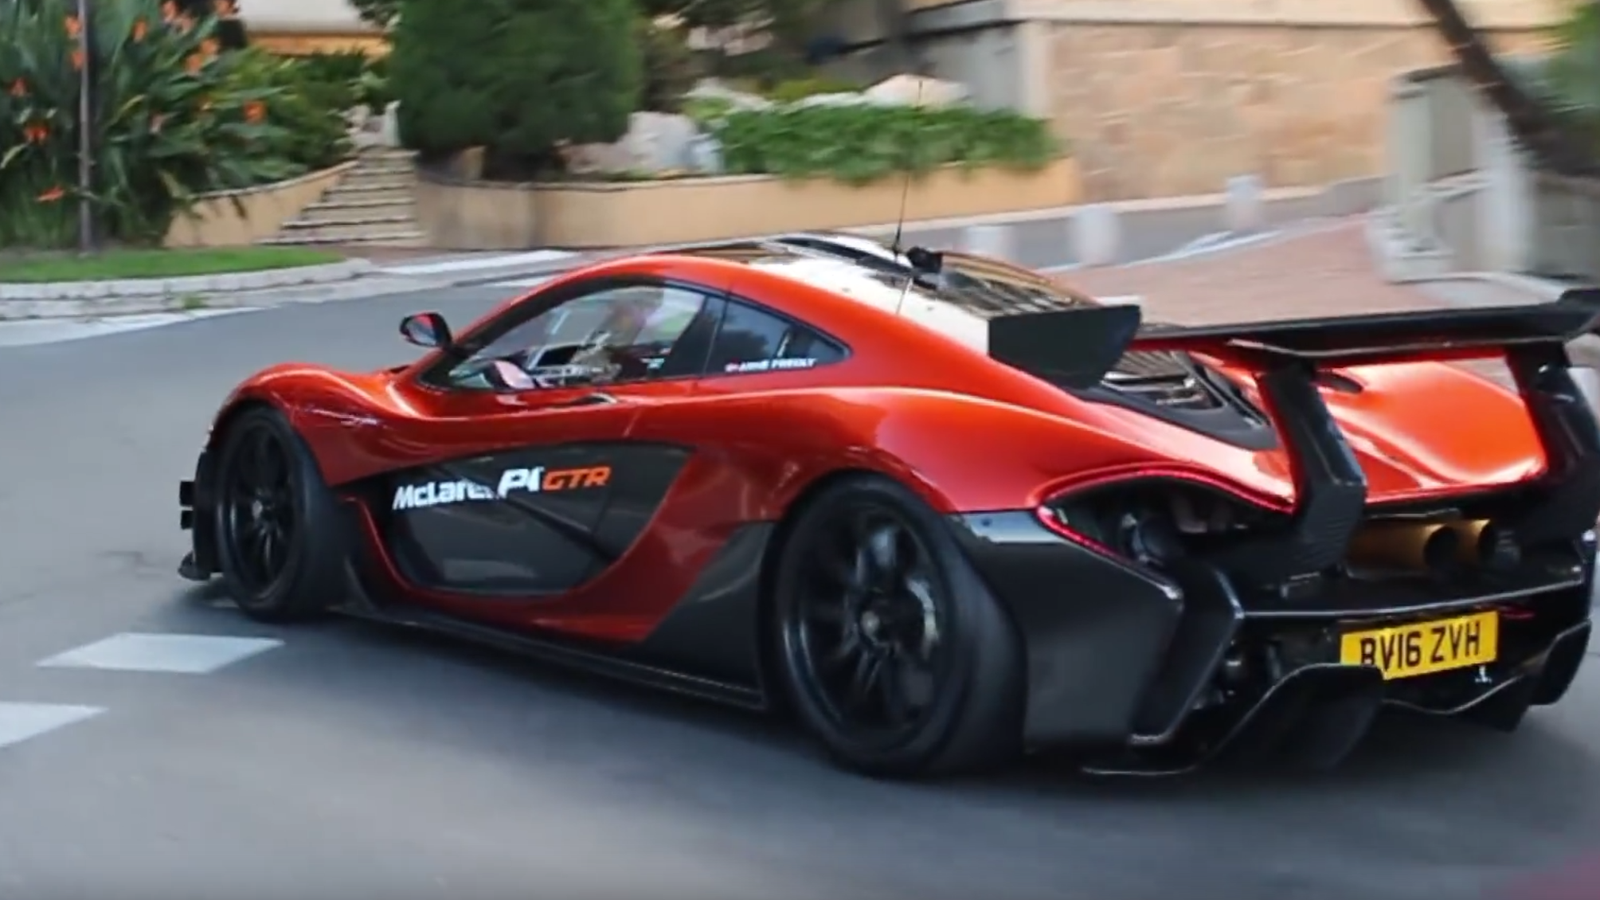 there are road legal mclaren p1 gtrs everywhere